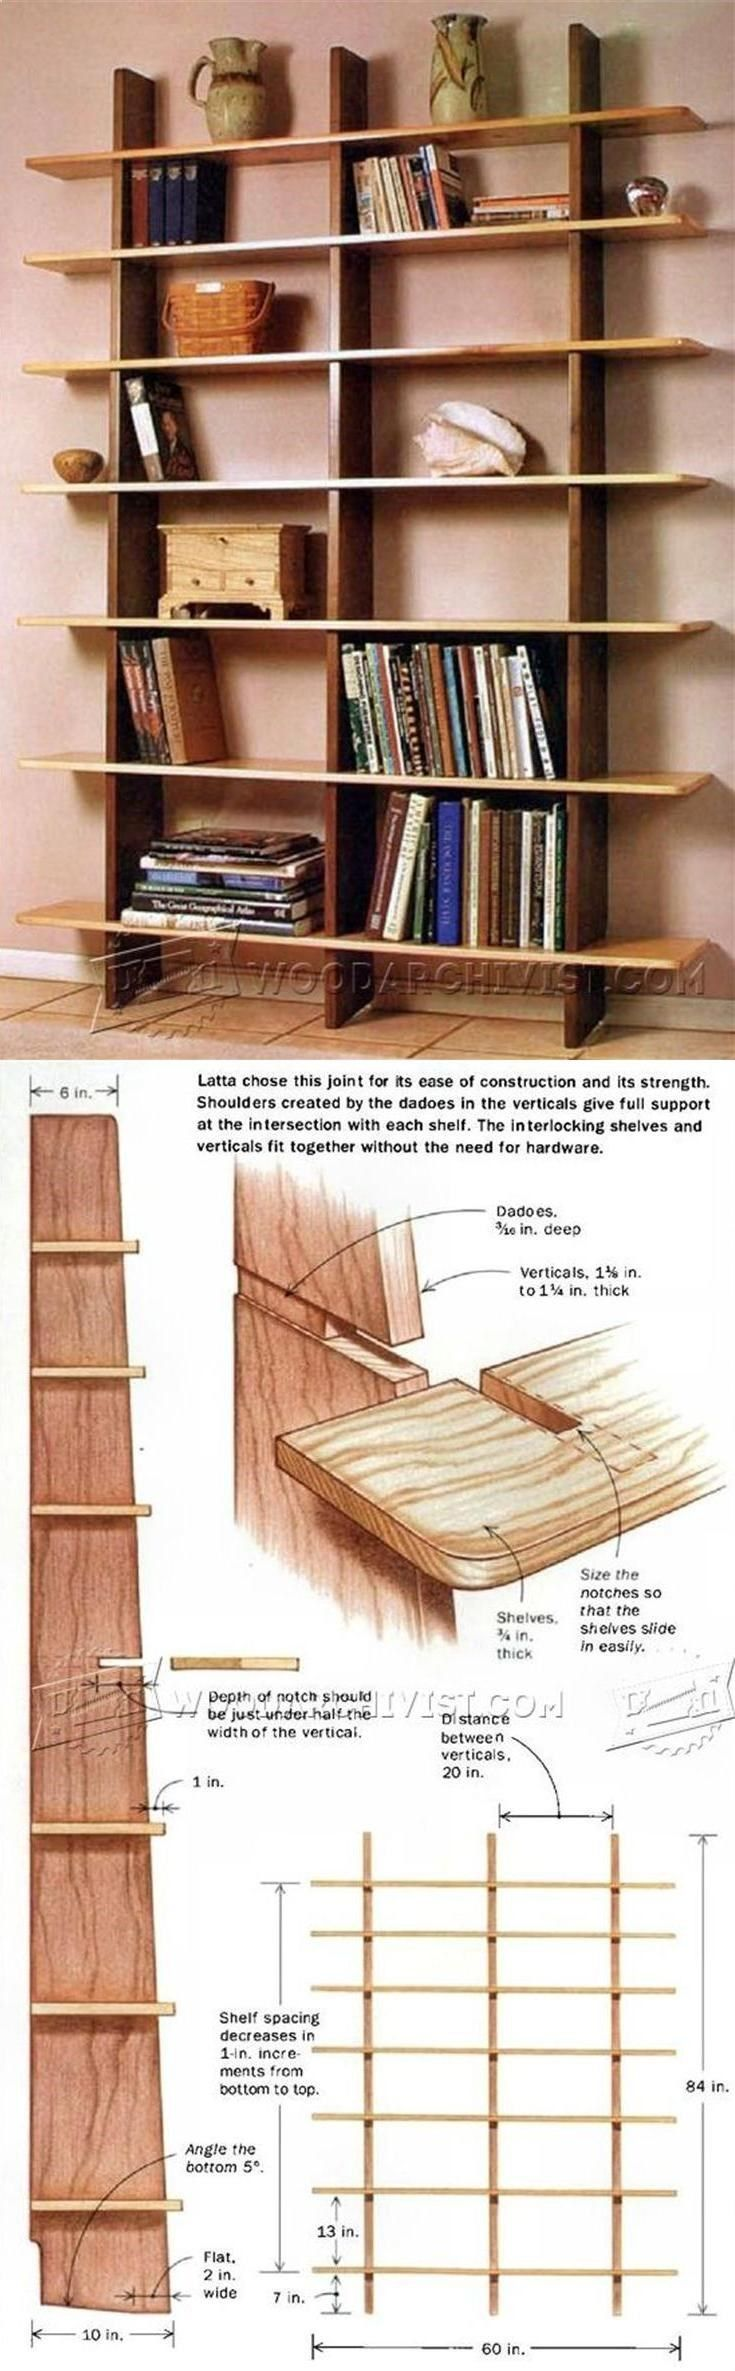 Teds Wood Working - Bookshelves Plans - Furniture Plans and Projects | WoodArchivist.com - Get A Lifetime Of Project Ideas & Inspiration!